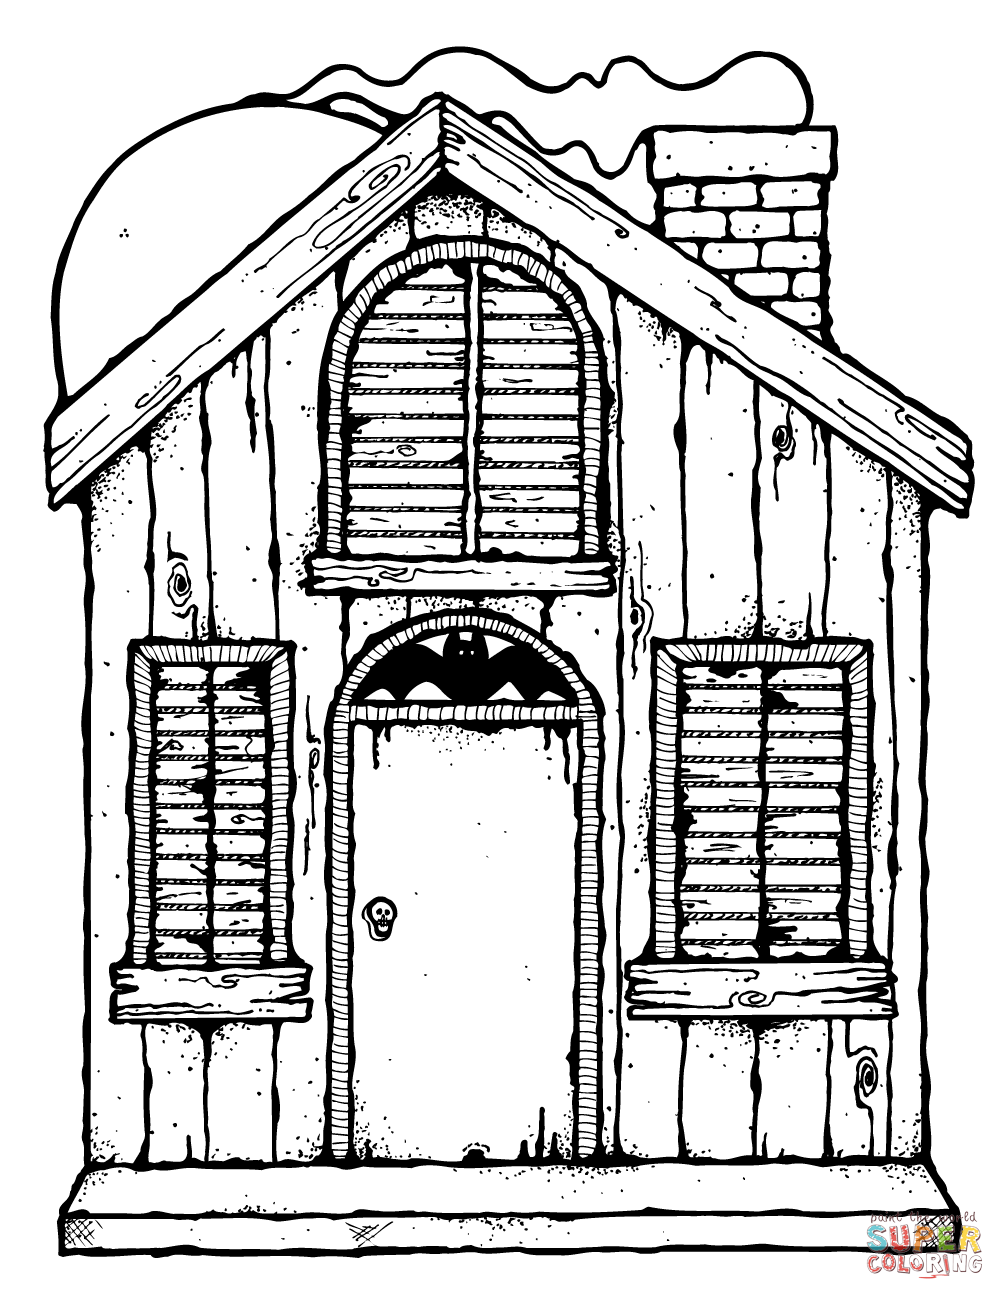 Haunted House Coloring Page Free Printable Coloring Pages, Huanted